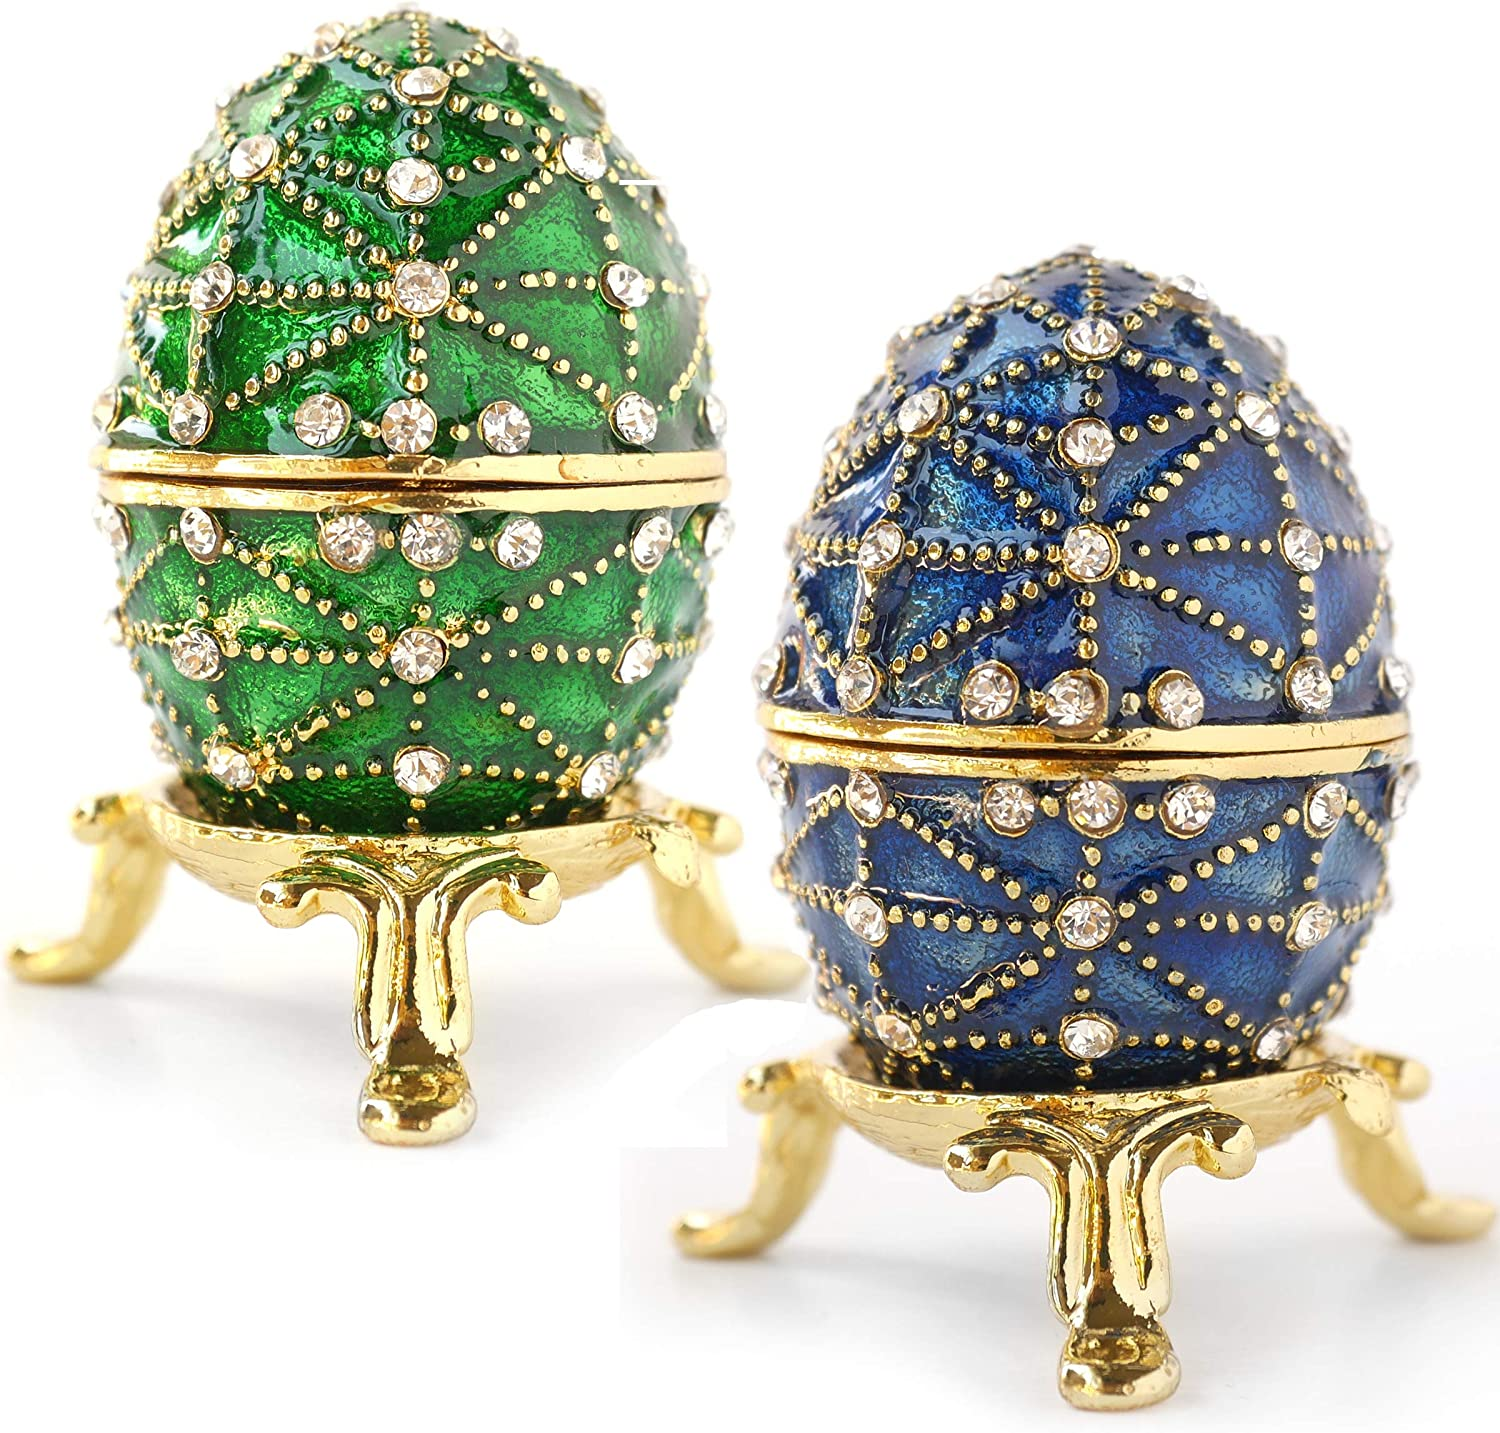 Hand-Painted Vintage Style Mini Max 47% OFF Faberge with Minneapolis Mall Rich Spa Enamel Egg